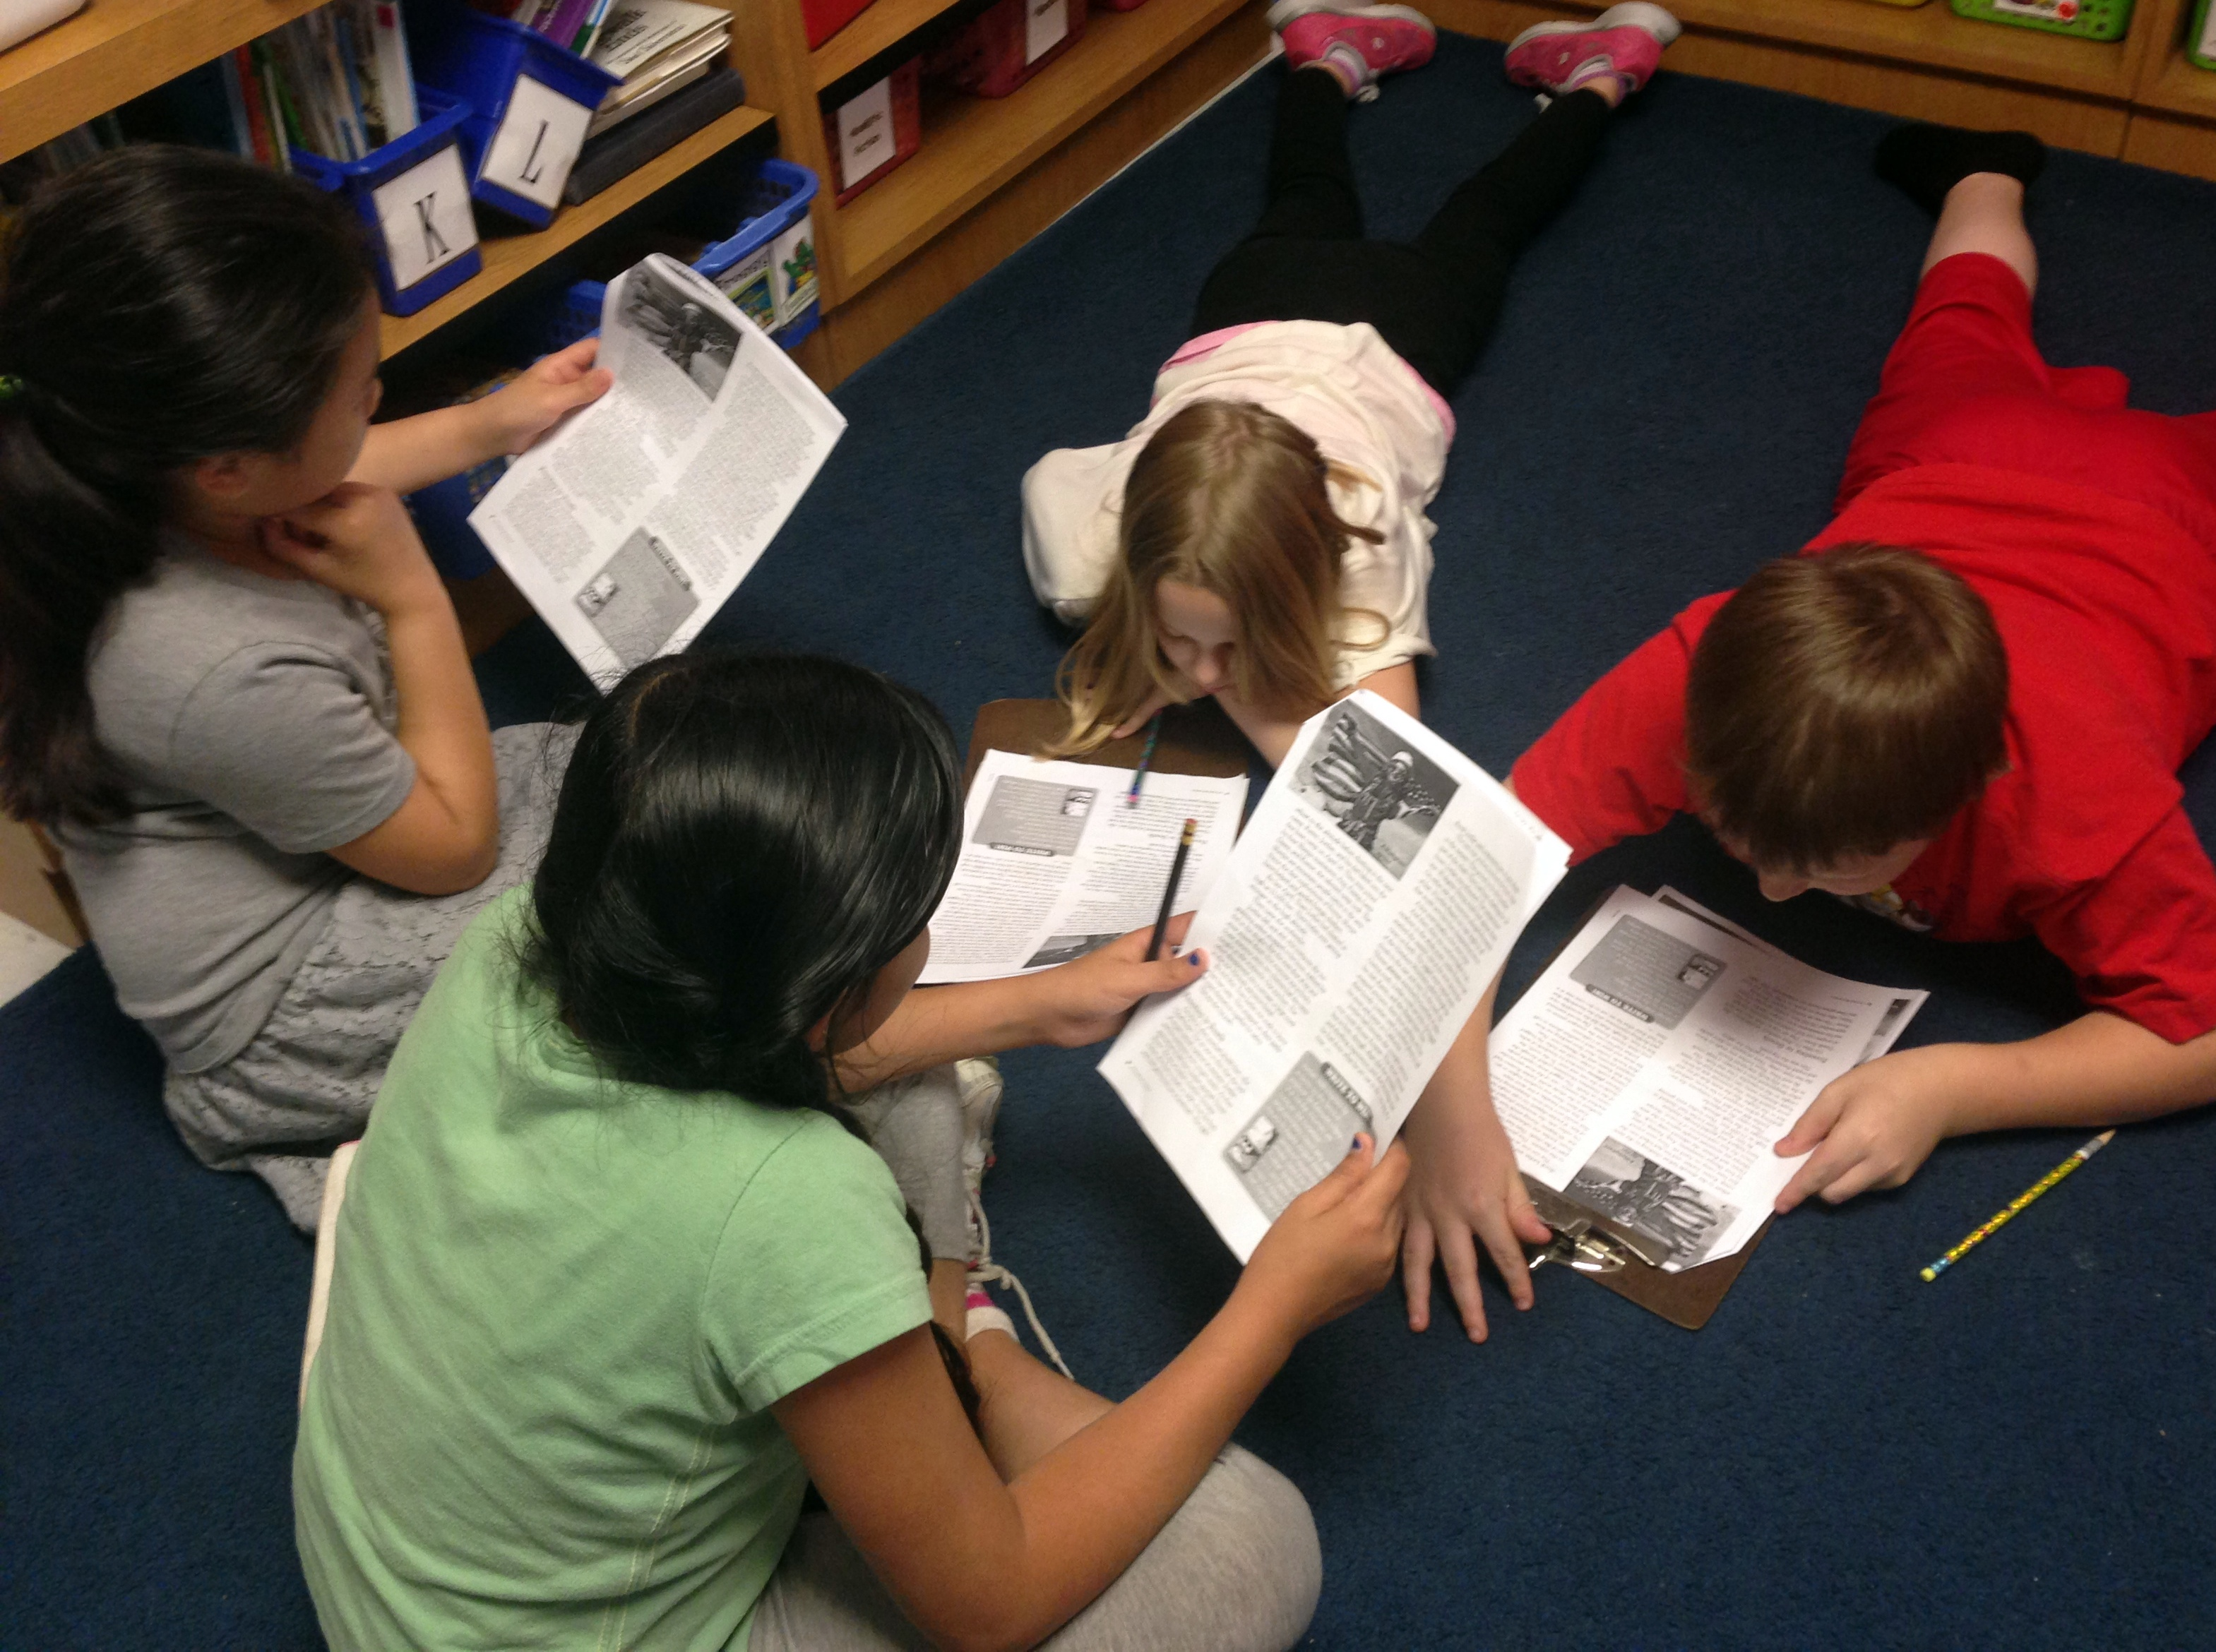 4 students working in a club to discuss a reading passage